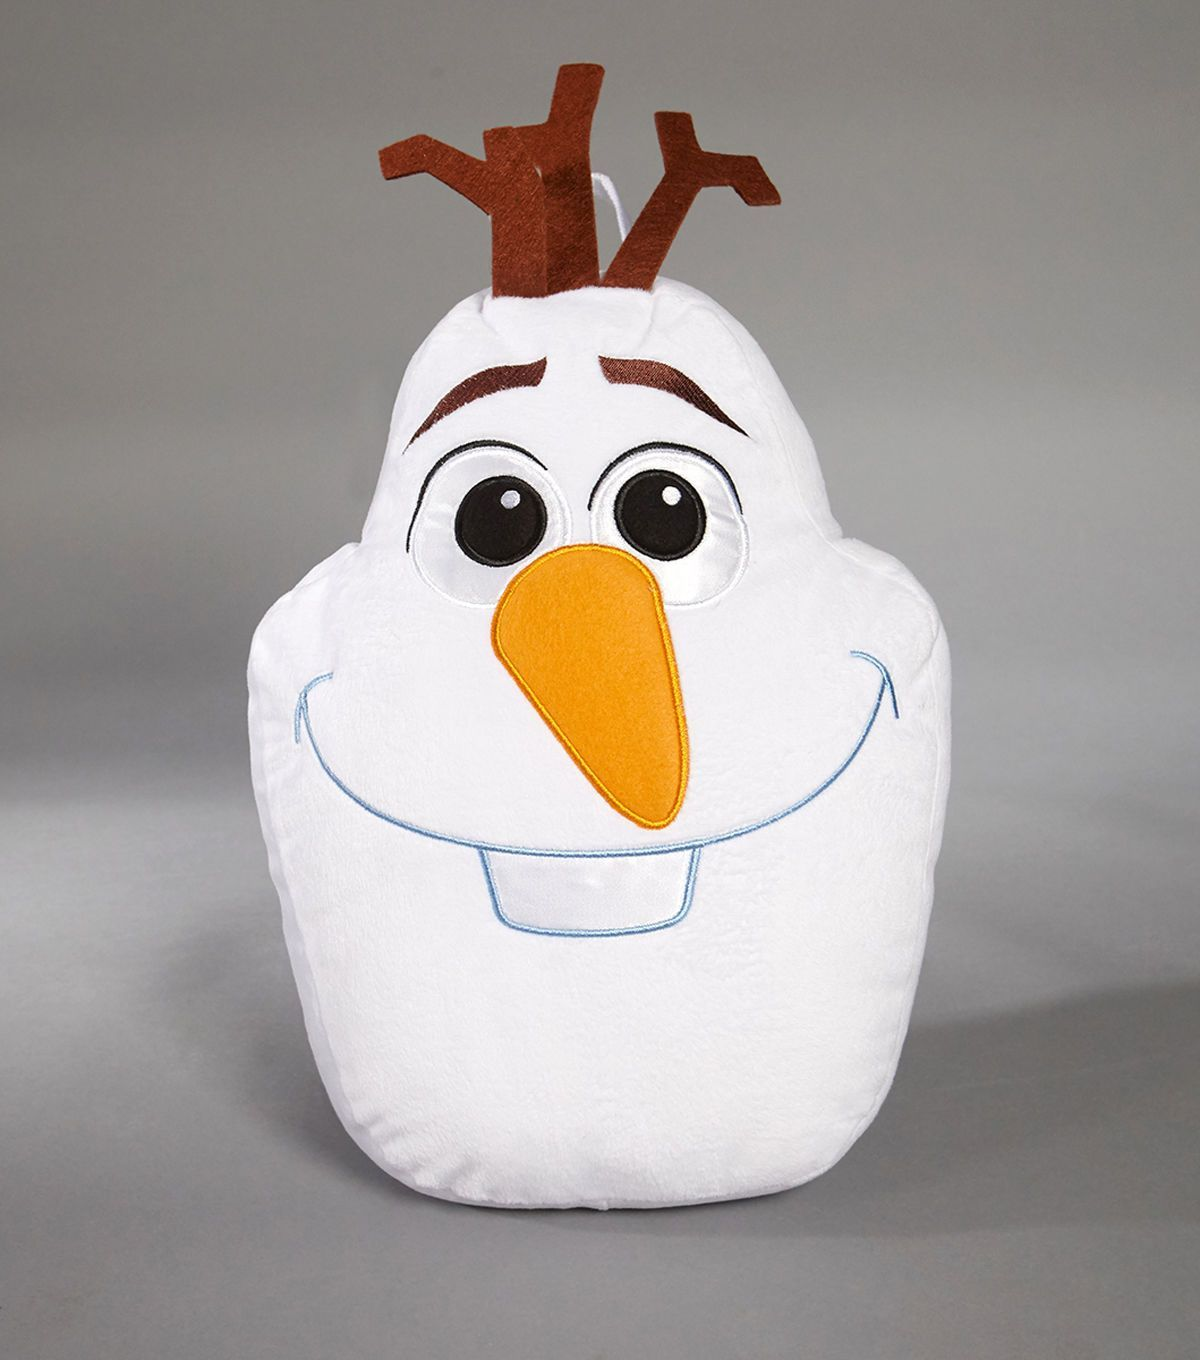 Cute Olaf Pillow : Disney Frozen Finished Olaf Pillow Top Products: Can t Live Without Pinterest Disney ...